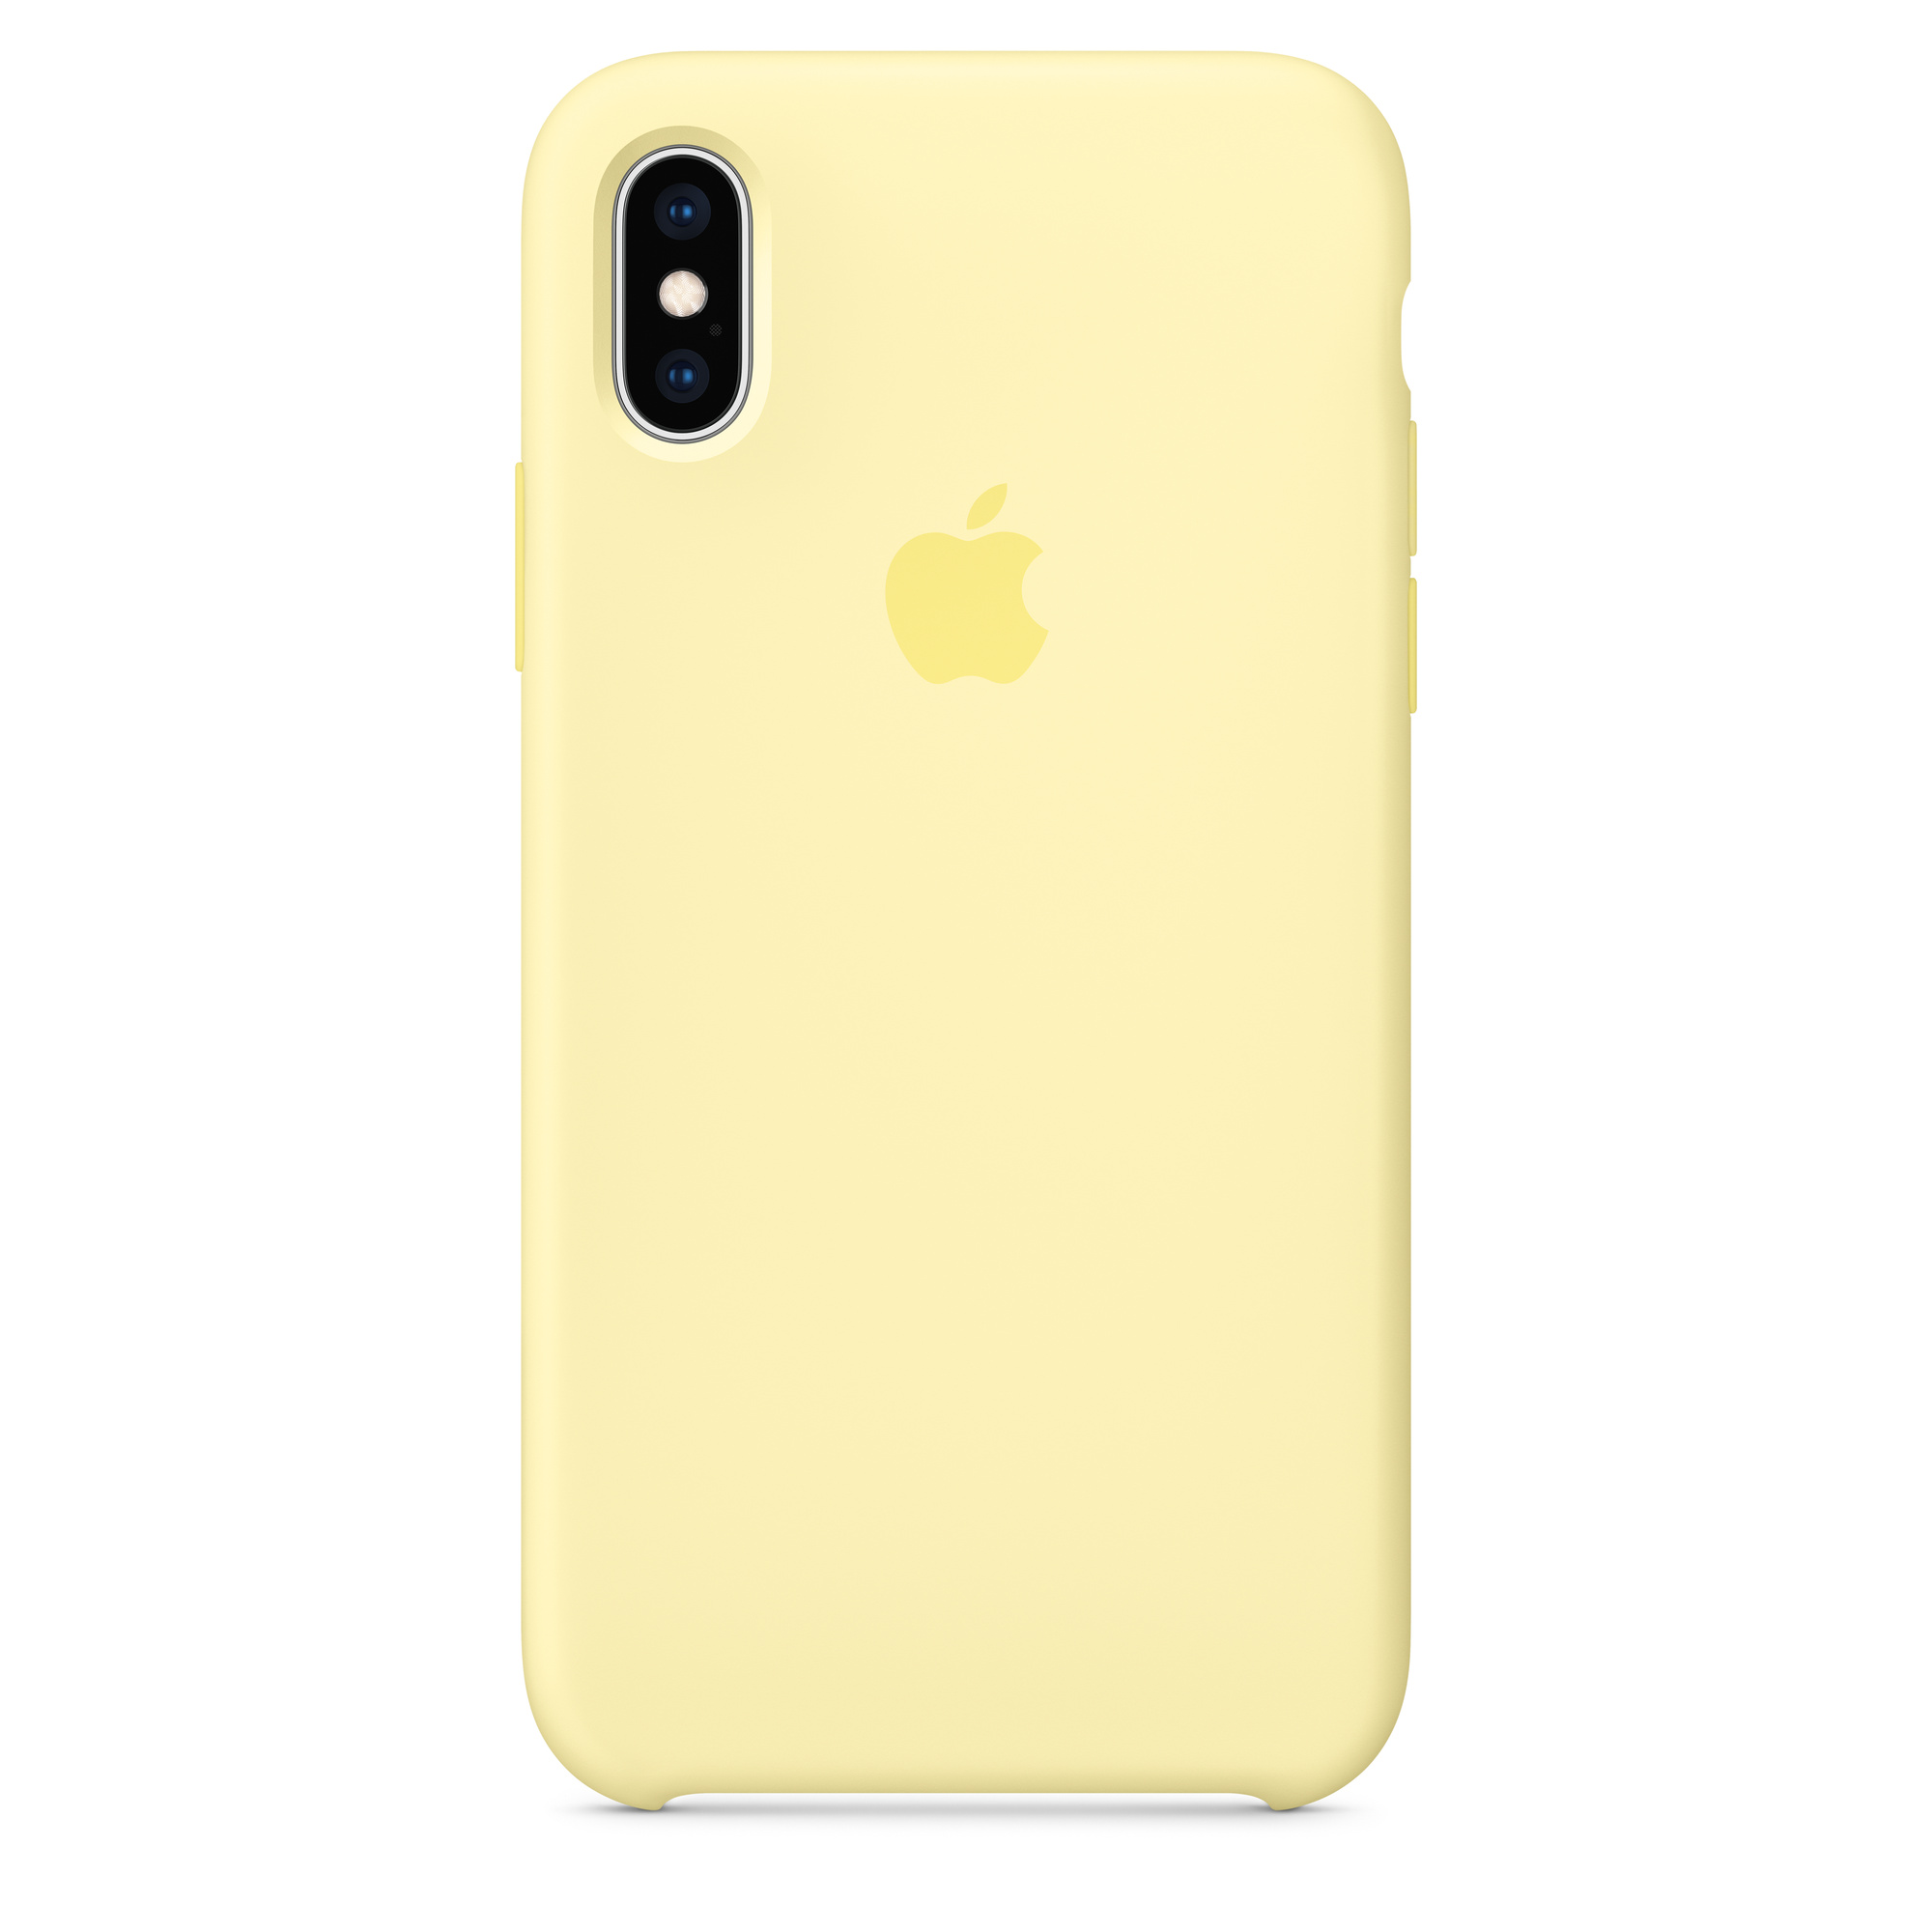 reputable site c678d 50558 iPhone XS Silicone Case - Mellow Yellow